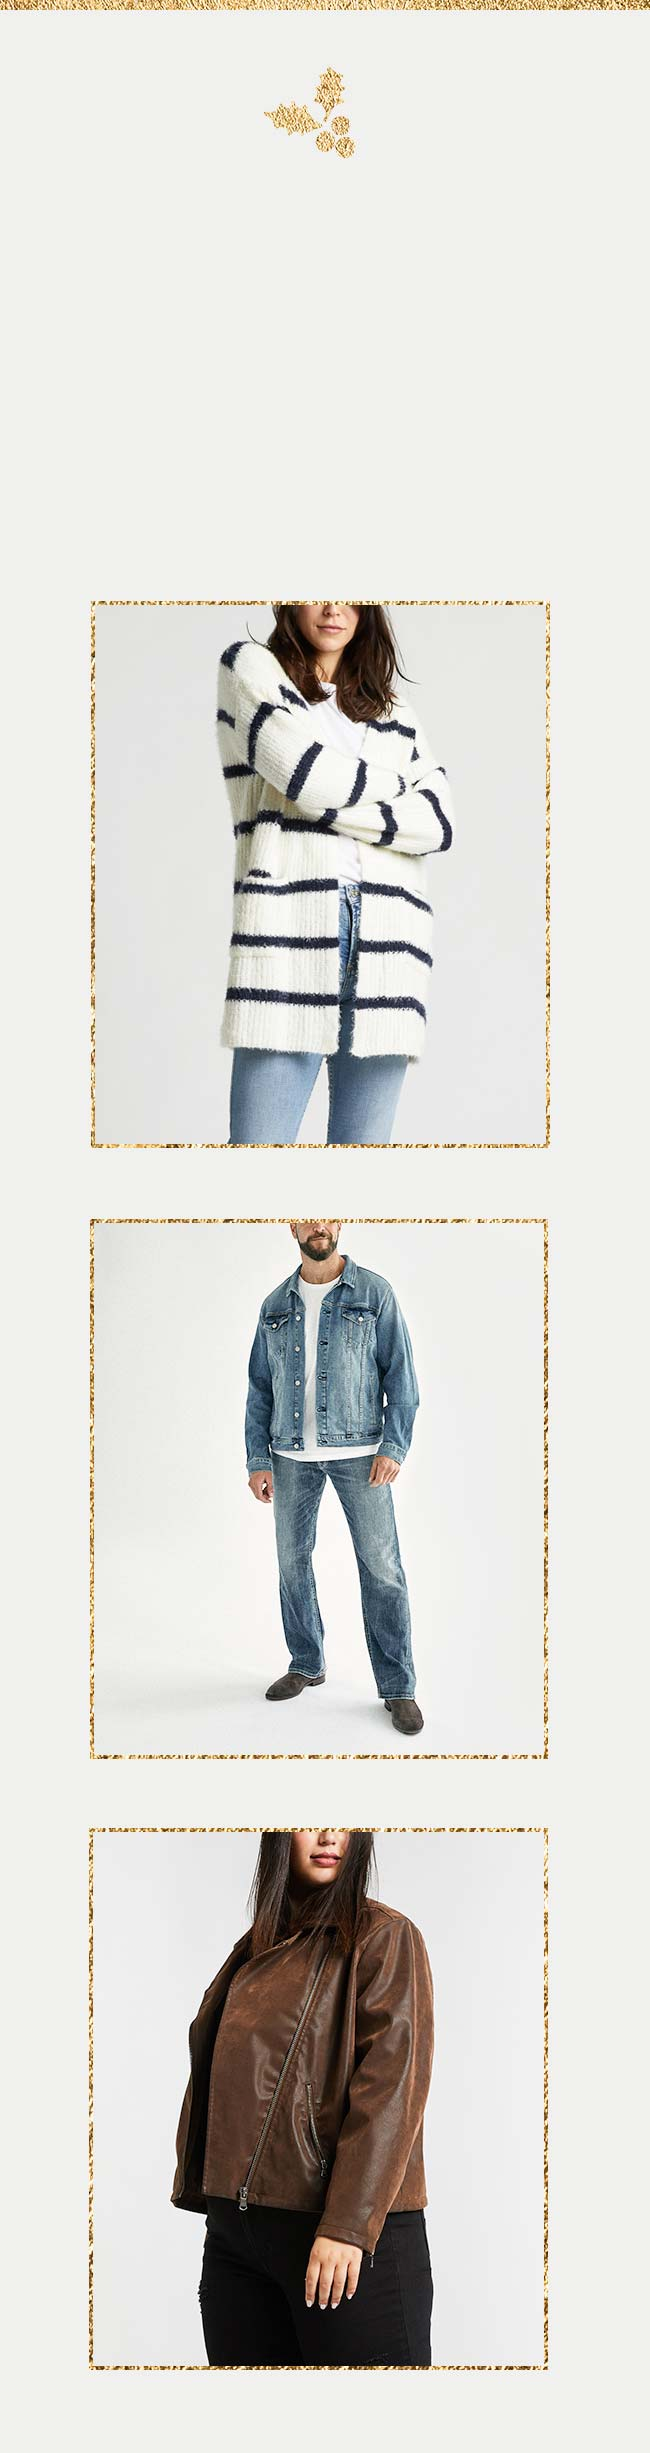 Silver Jeans Co.- Images of individuals wearing new arrivals